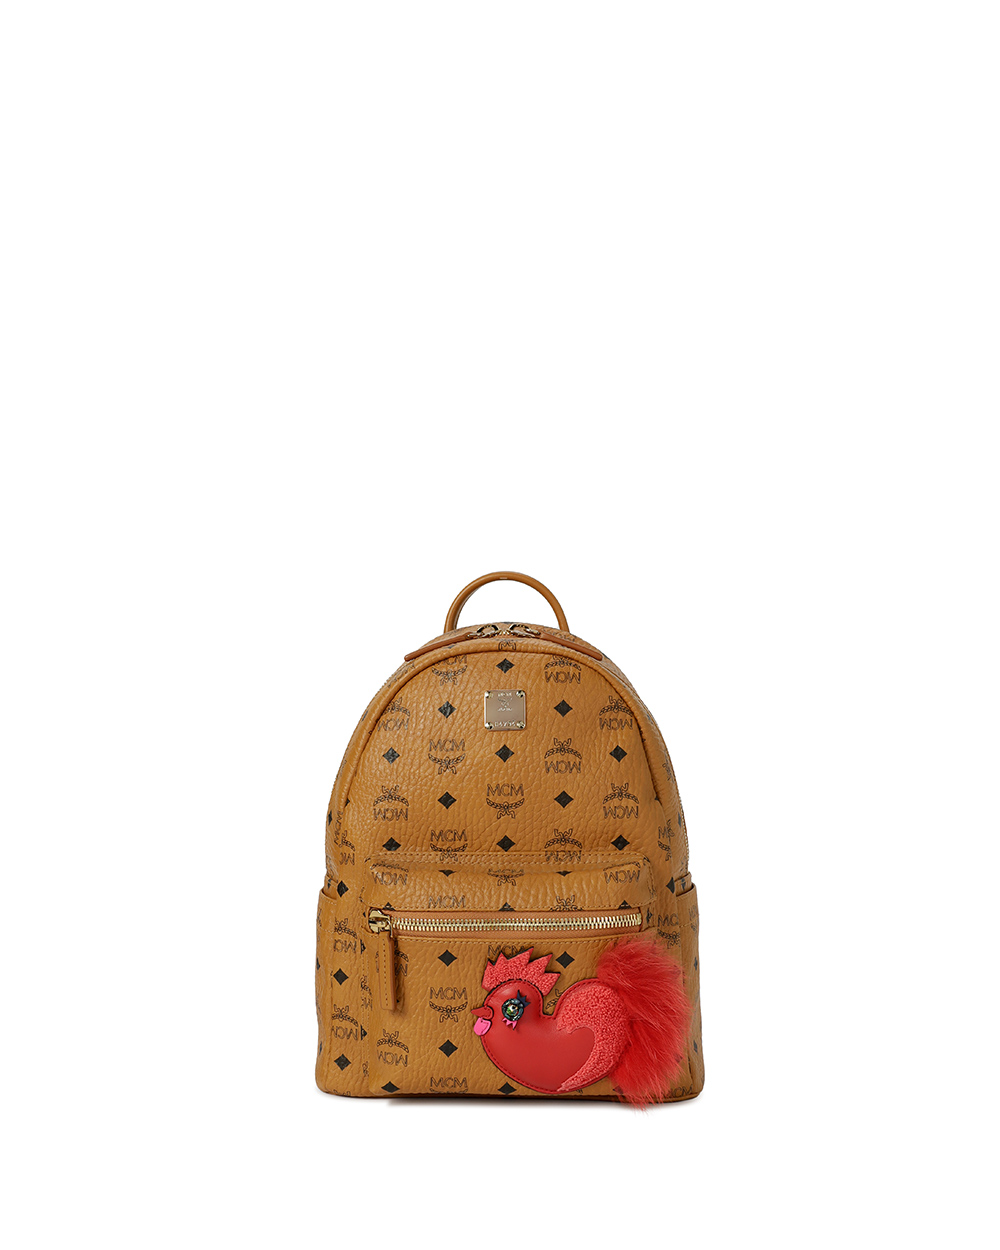 Rooster Pattern Leather Backpack